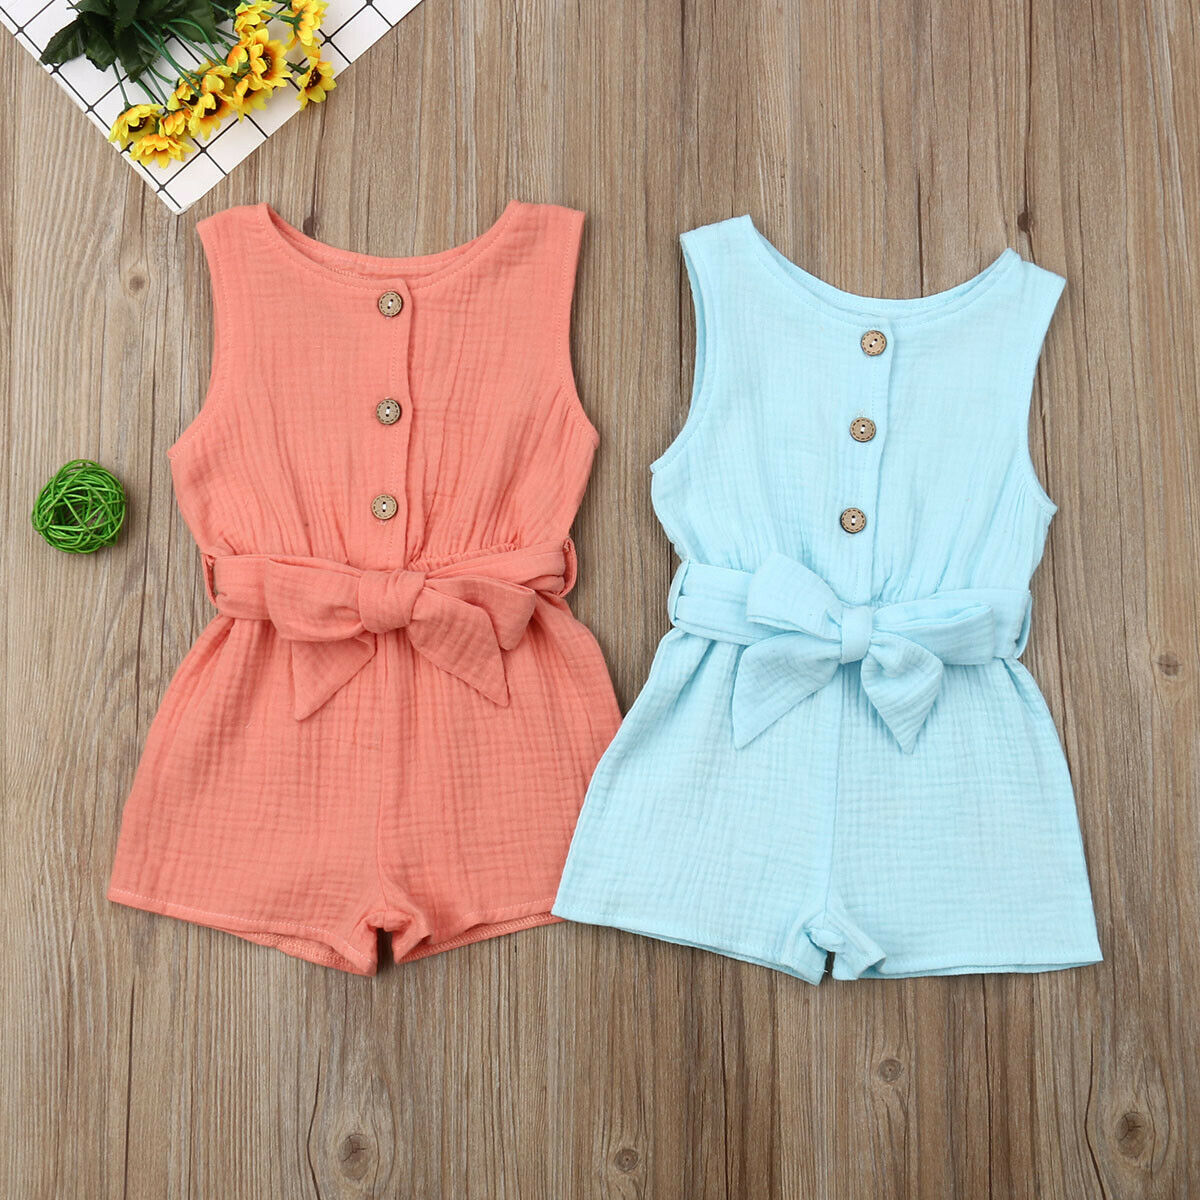 Summer Baby Girl Clothes Sleeveless Home Dress Kids Gift Sweet  Jumpsuit Age 0-18 Cotton Sleeveless Romper Overall Outfit